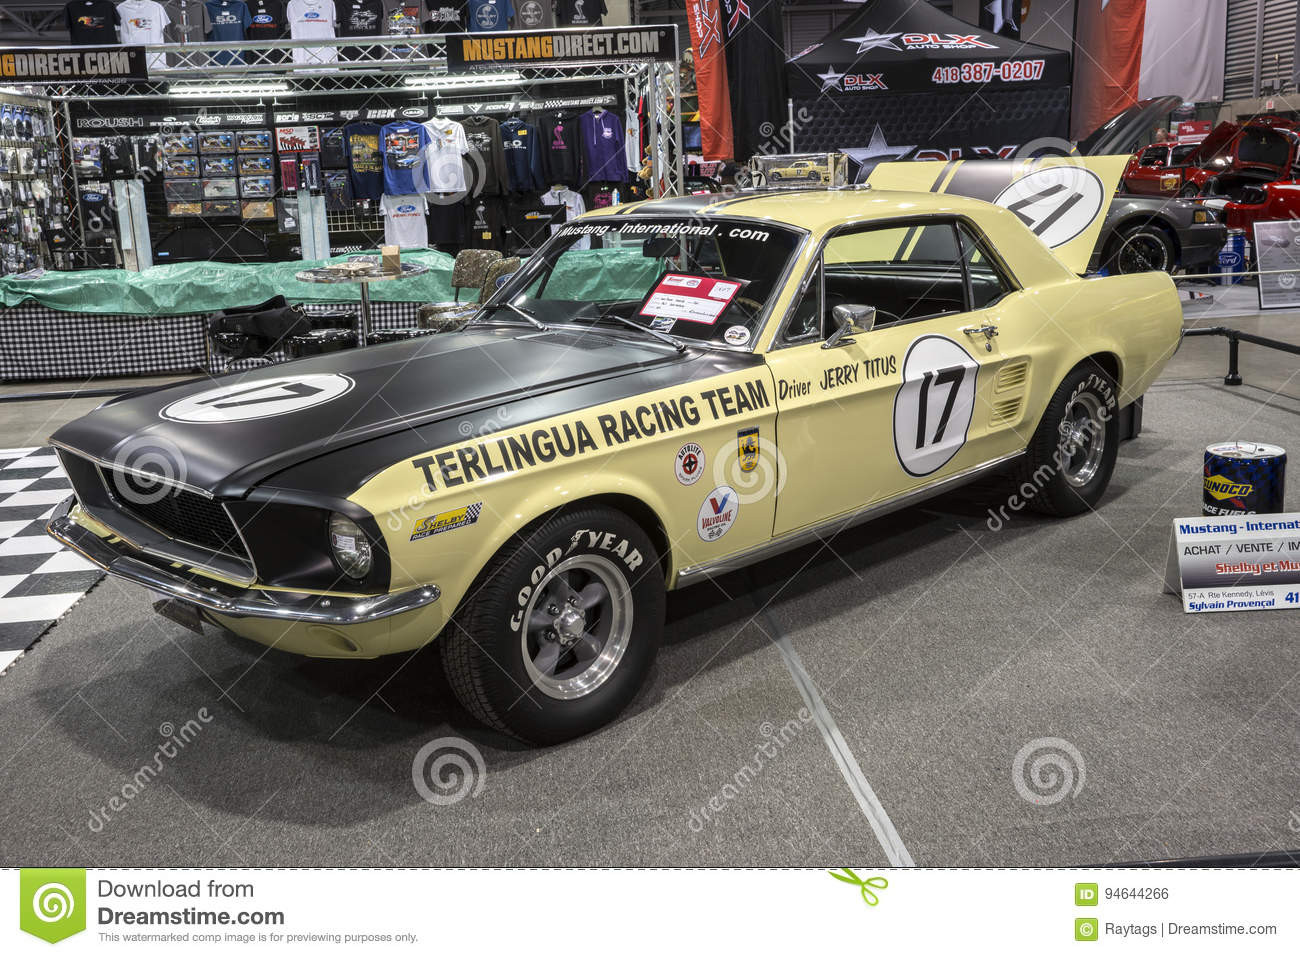 Picture of 1967 ford mustang race car in display during the salon de lauto sport de quebec april 7 8 9 2017